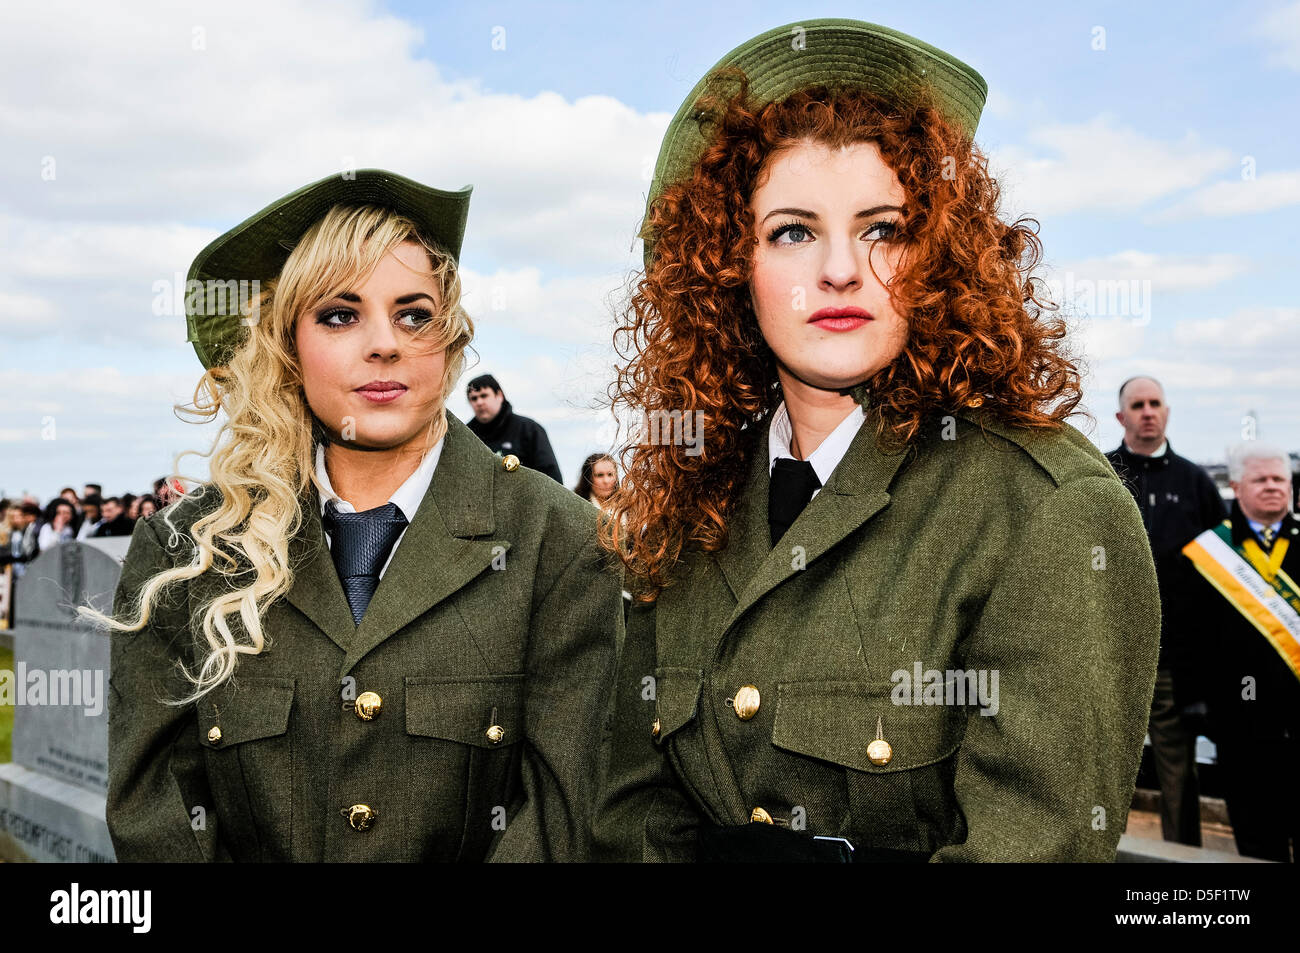 Two pretty girls wearing old fashioned soldier uniforms while listening to a speech to commemorate the anniversary - Stock Image